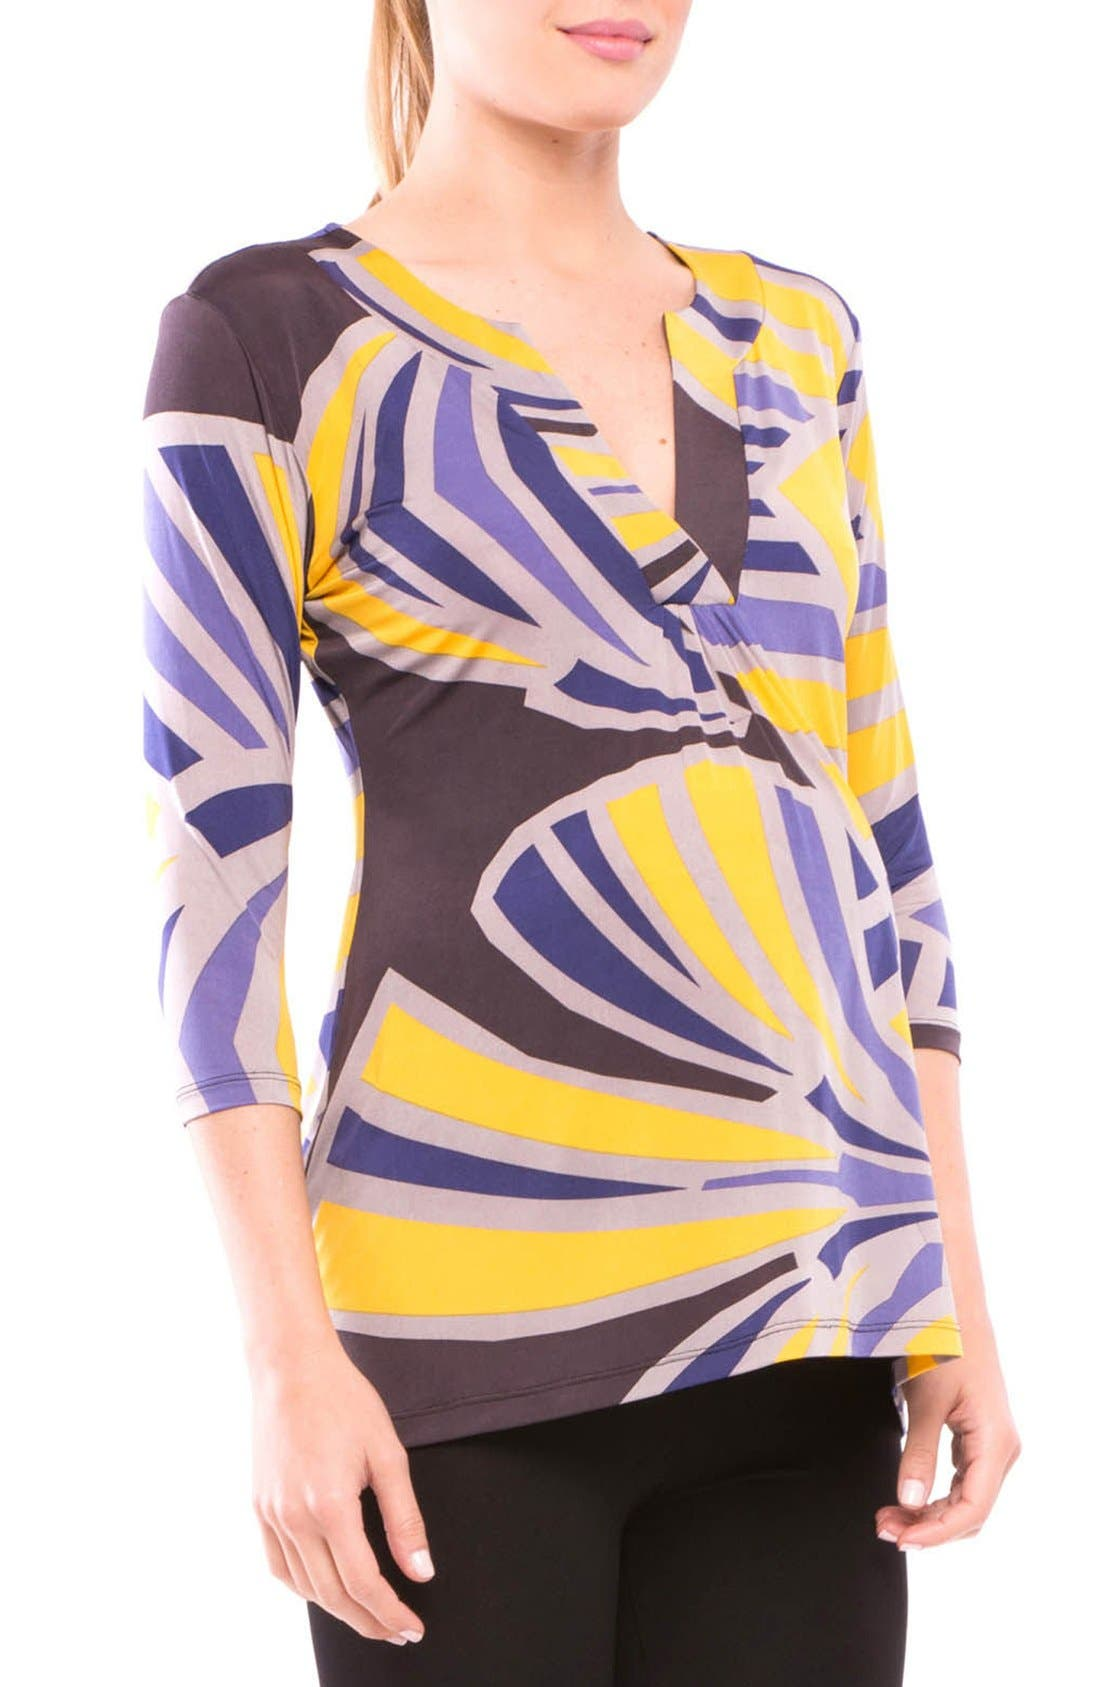 Lyla Maternity Top,                             Alternate thumbnail 3, color,                             VIOLET/ MUSTARD